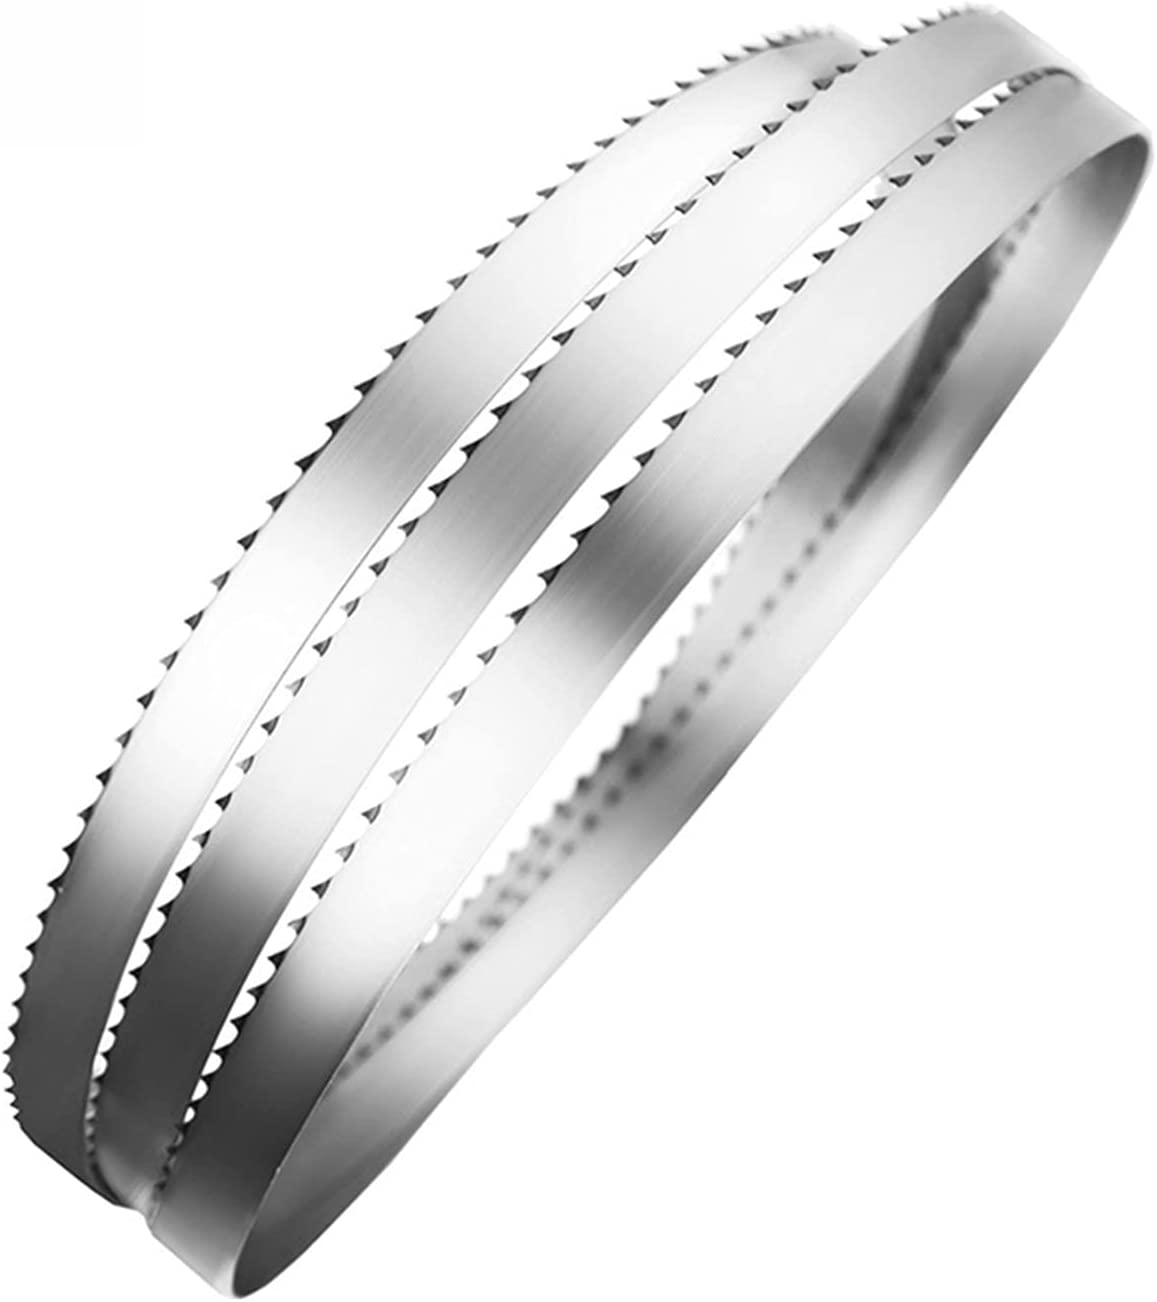 ADUCI 1pc 2080mm Band Saw Blades Cutting Bone and Meat 2080190.5